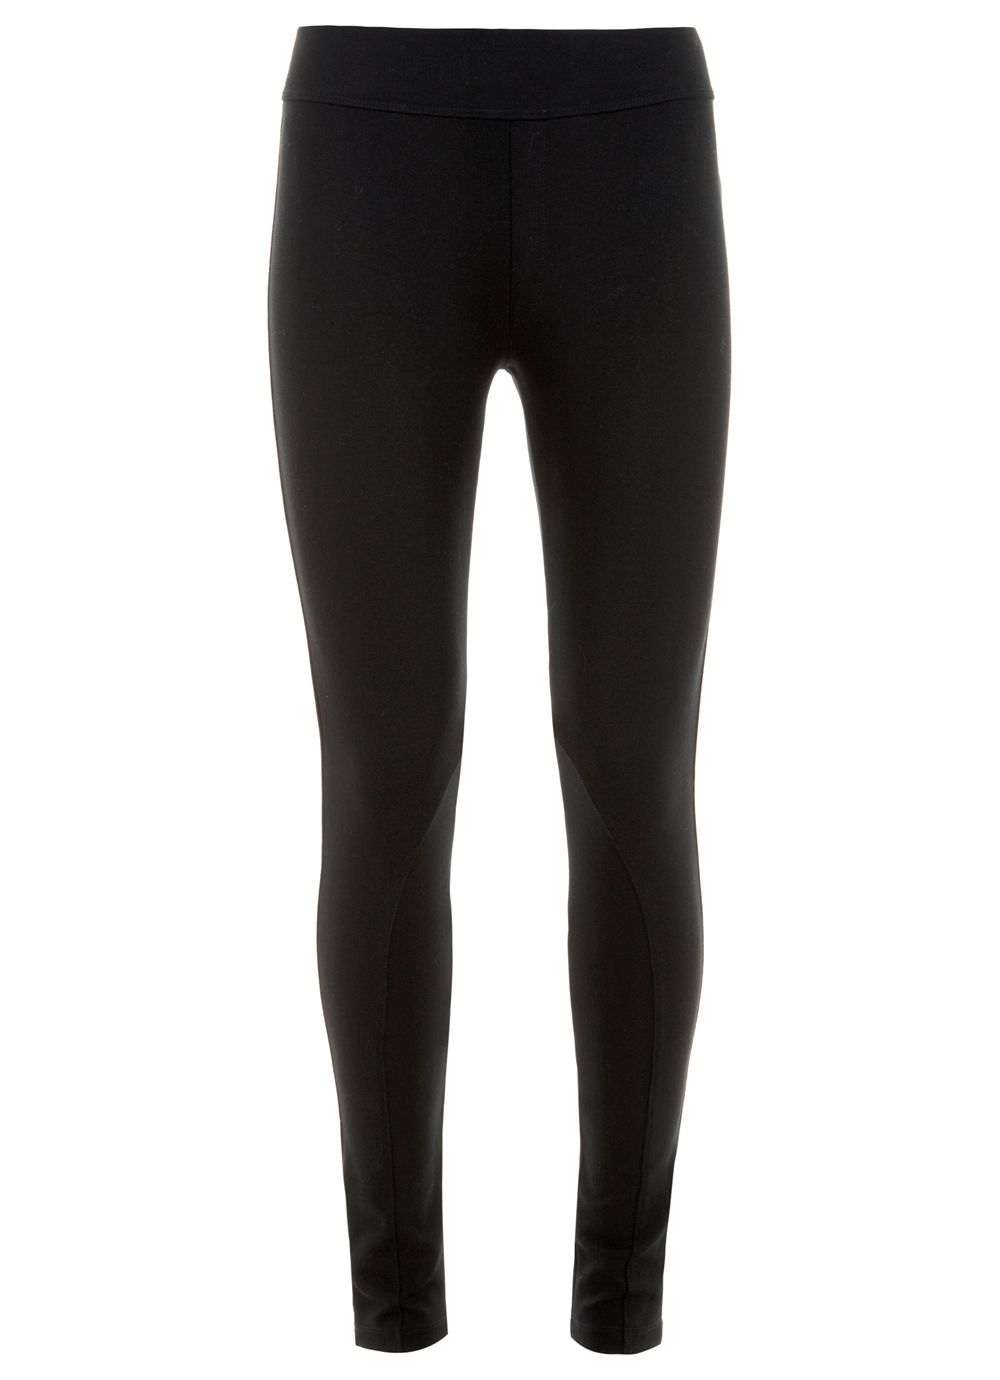 Black Jodhpur Leggings